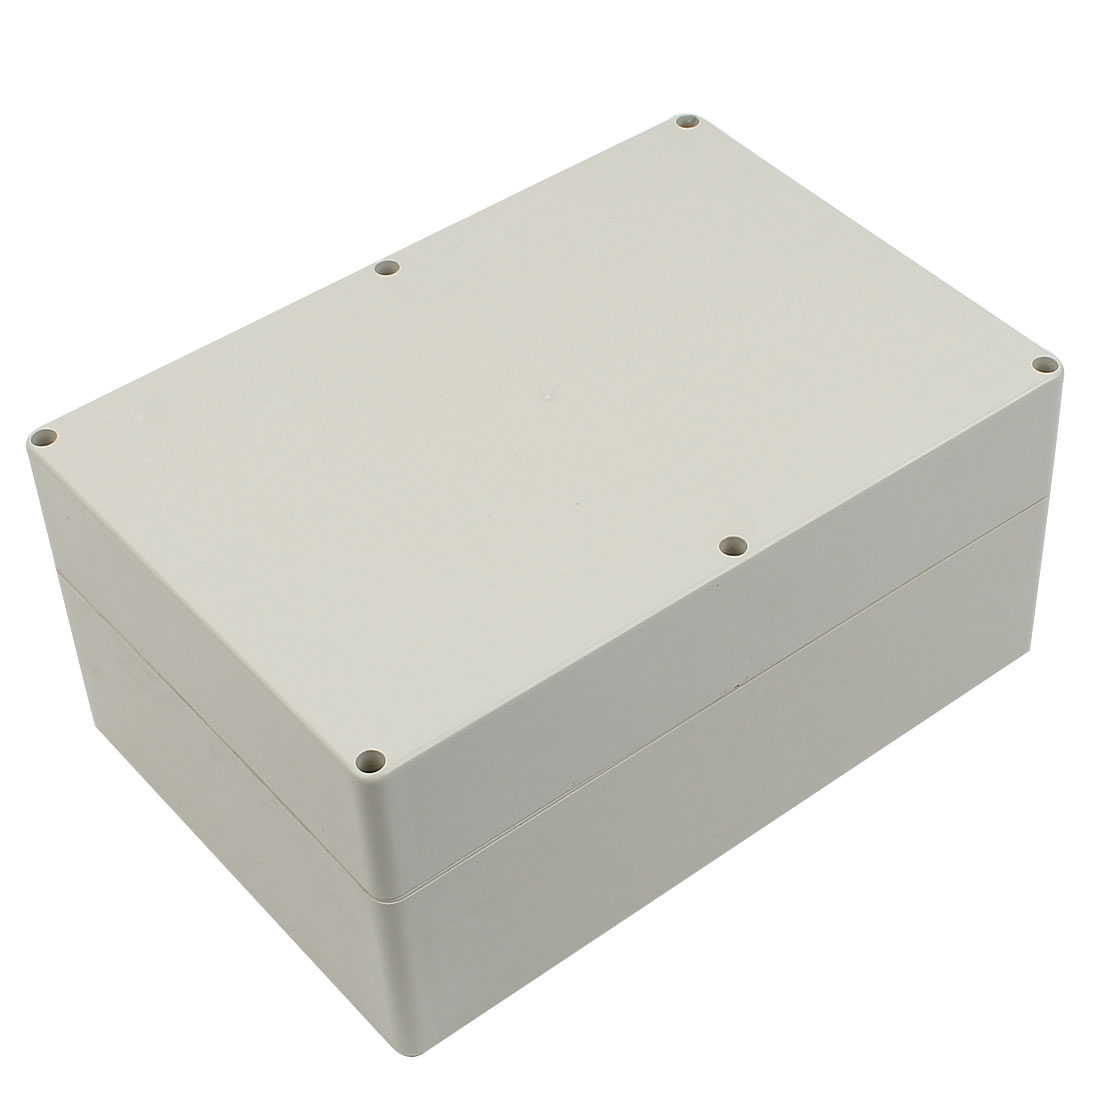 Rectangle Shape ABS Dustproof IP65 Sealed Electric Junction Box 263x182x125mm